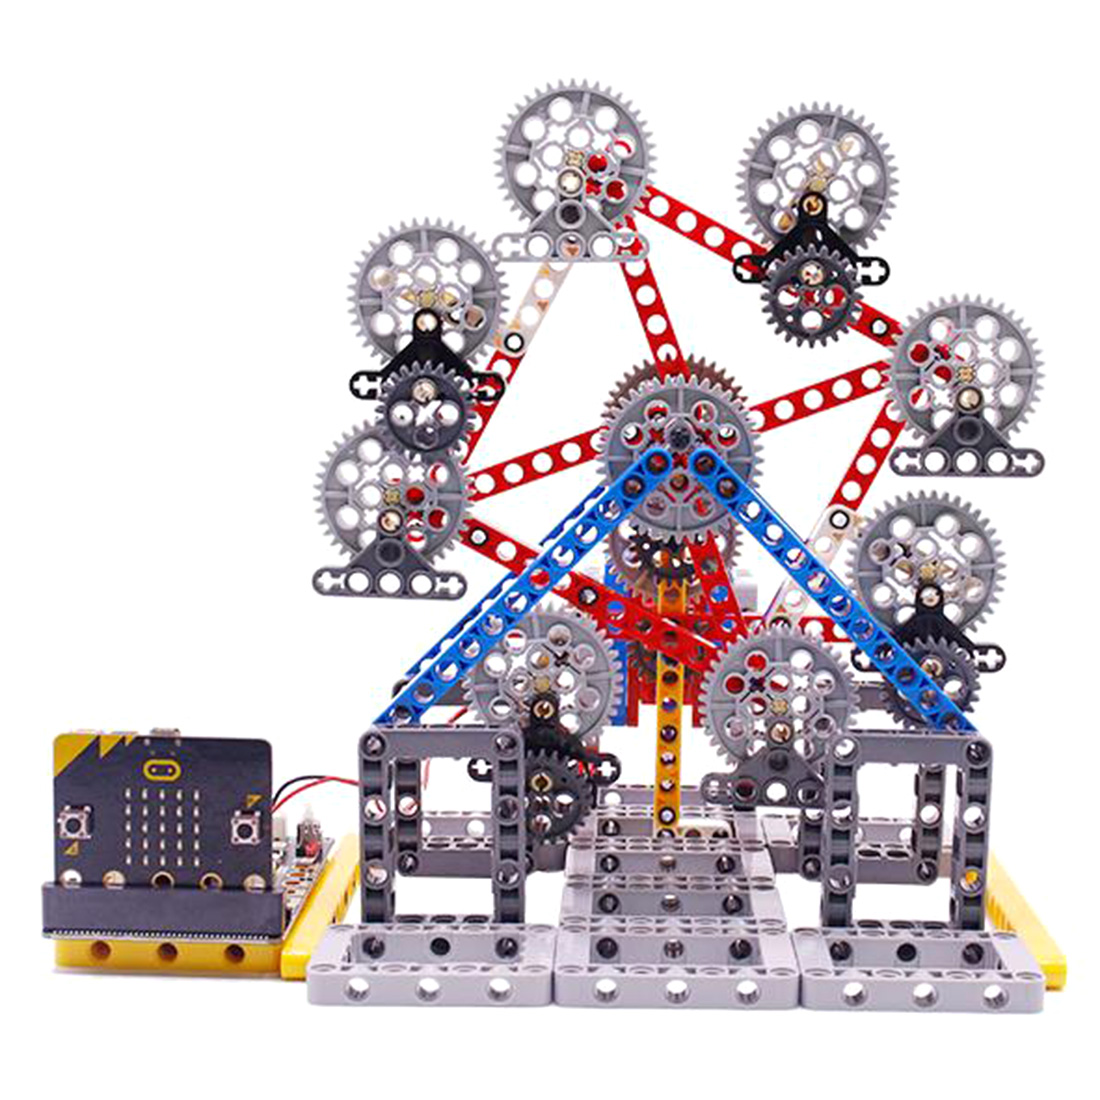 Hot Micro:Bit Programmable Building Block DIY Smart Ferris Wheel Kit Learning Kit Programmable Dancing Robot Kits Electronic Toy